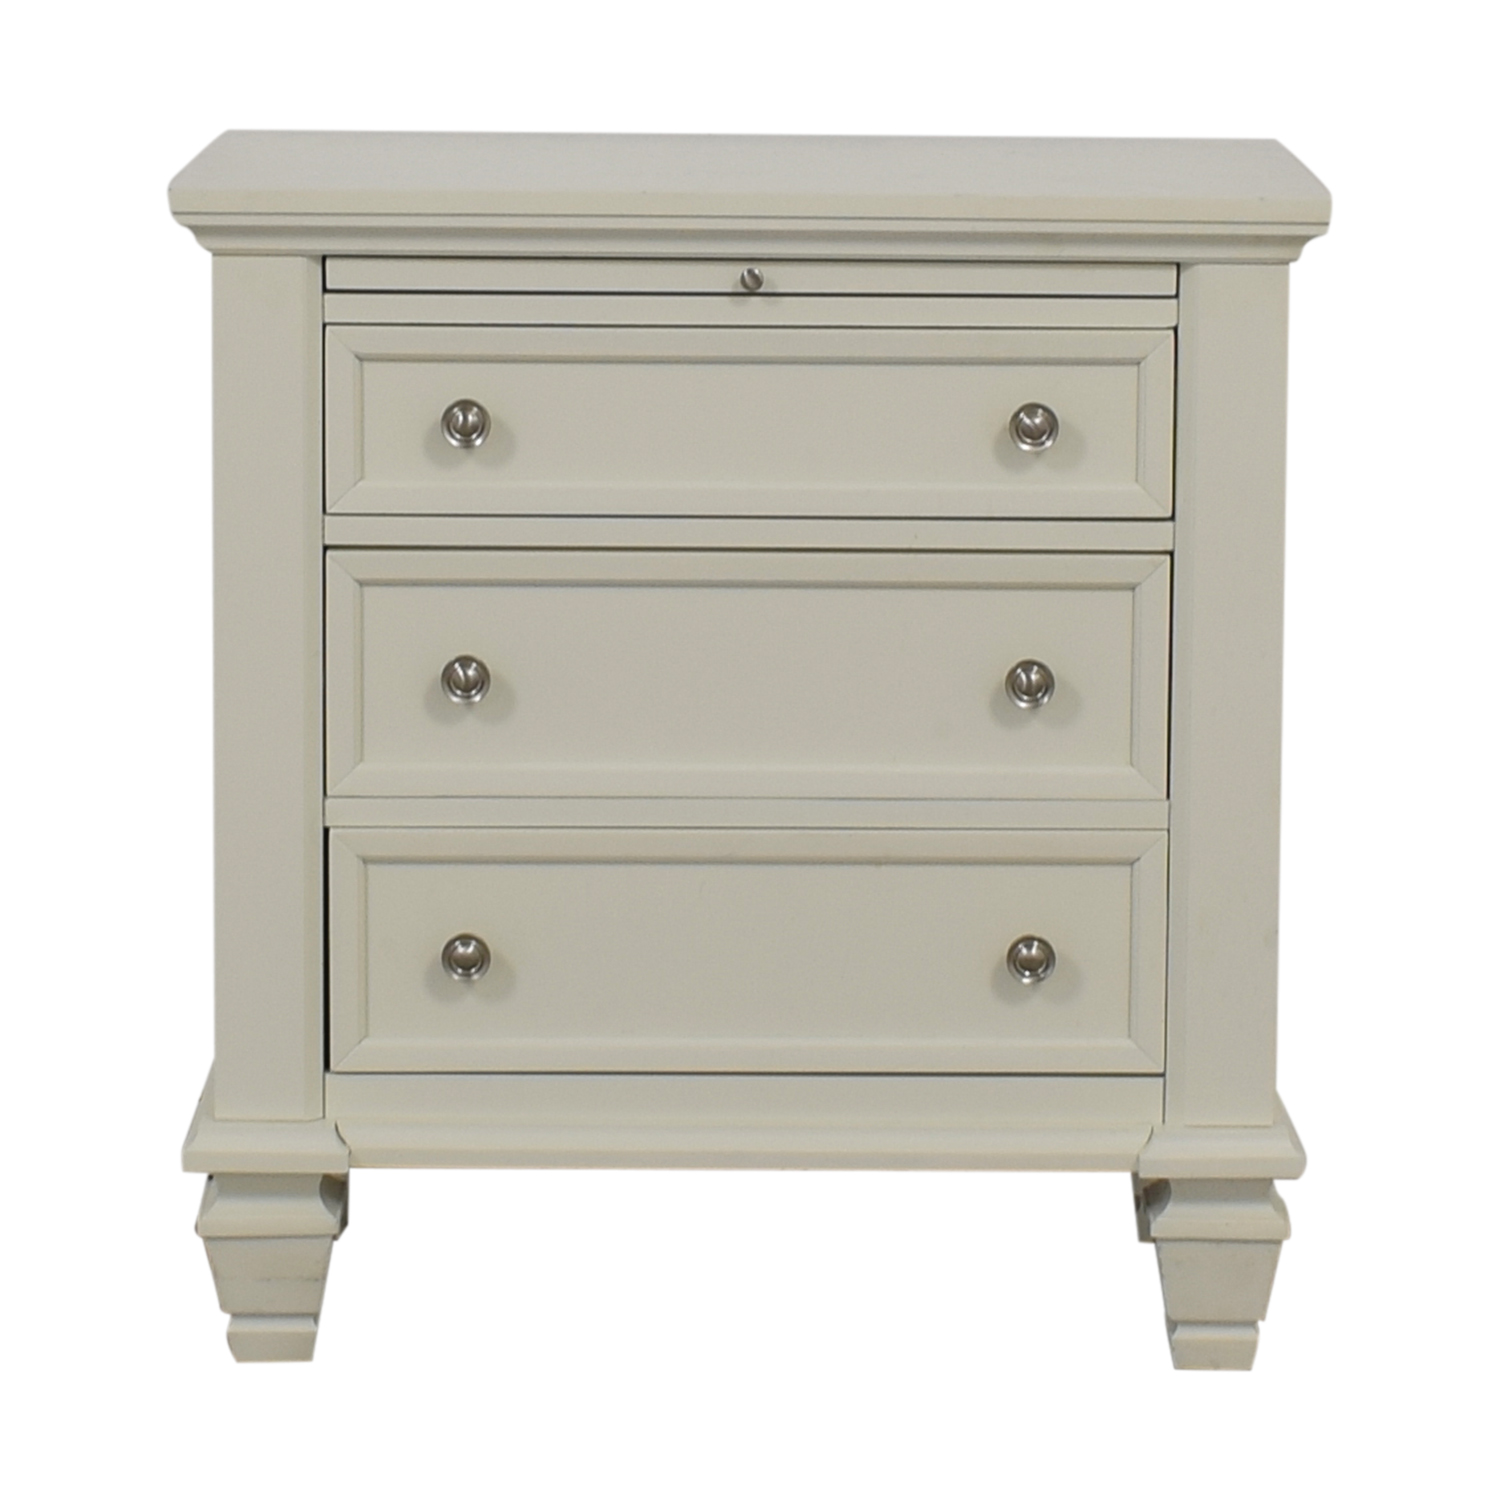 Coaster Coaster White Three-Drawer Night Stand used